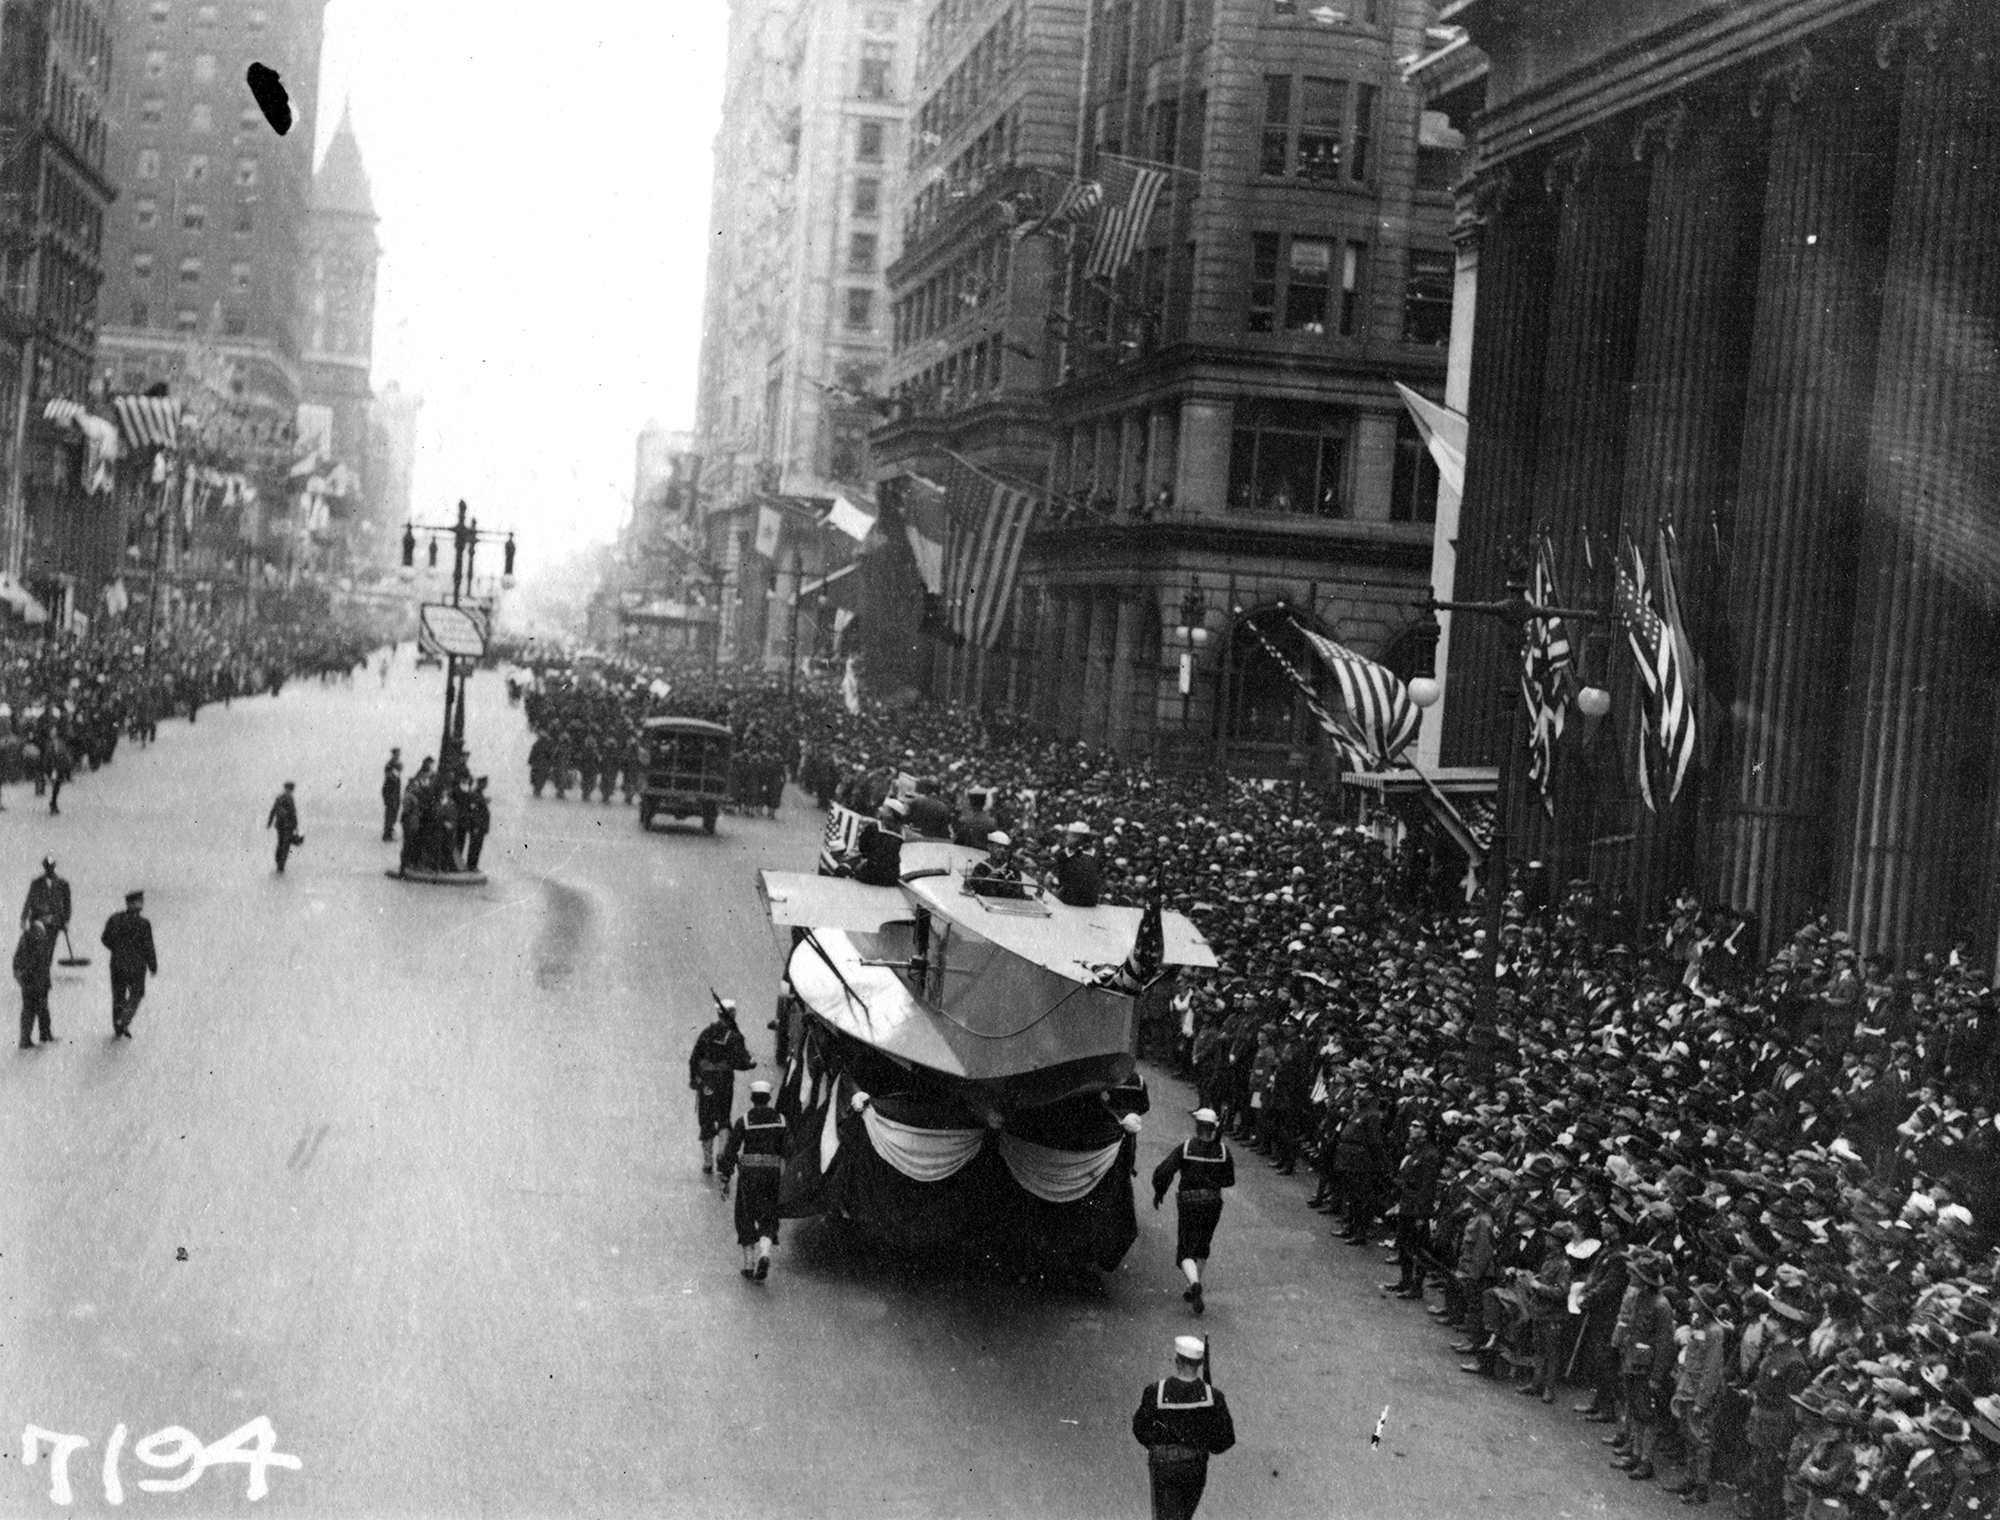 Looking back at a 1918 parade that helped spread a deadly flu, leaving nearly 13,000 dead